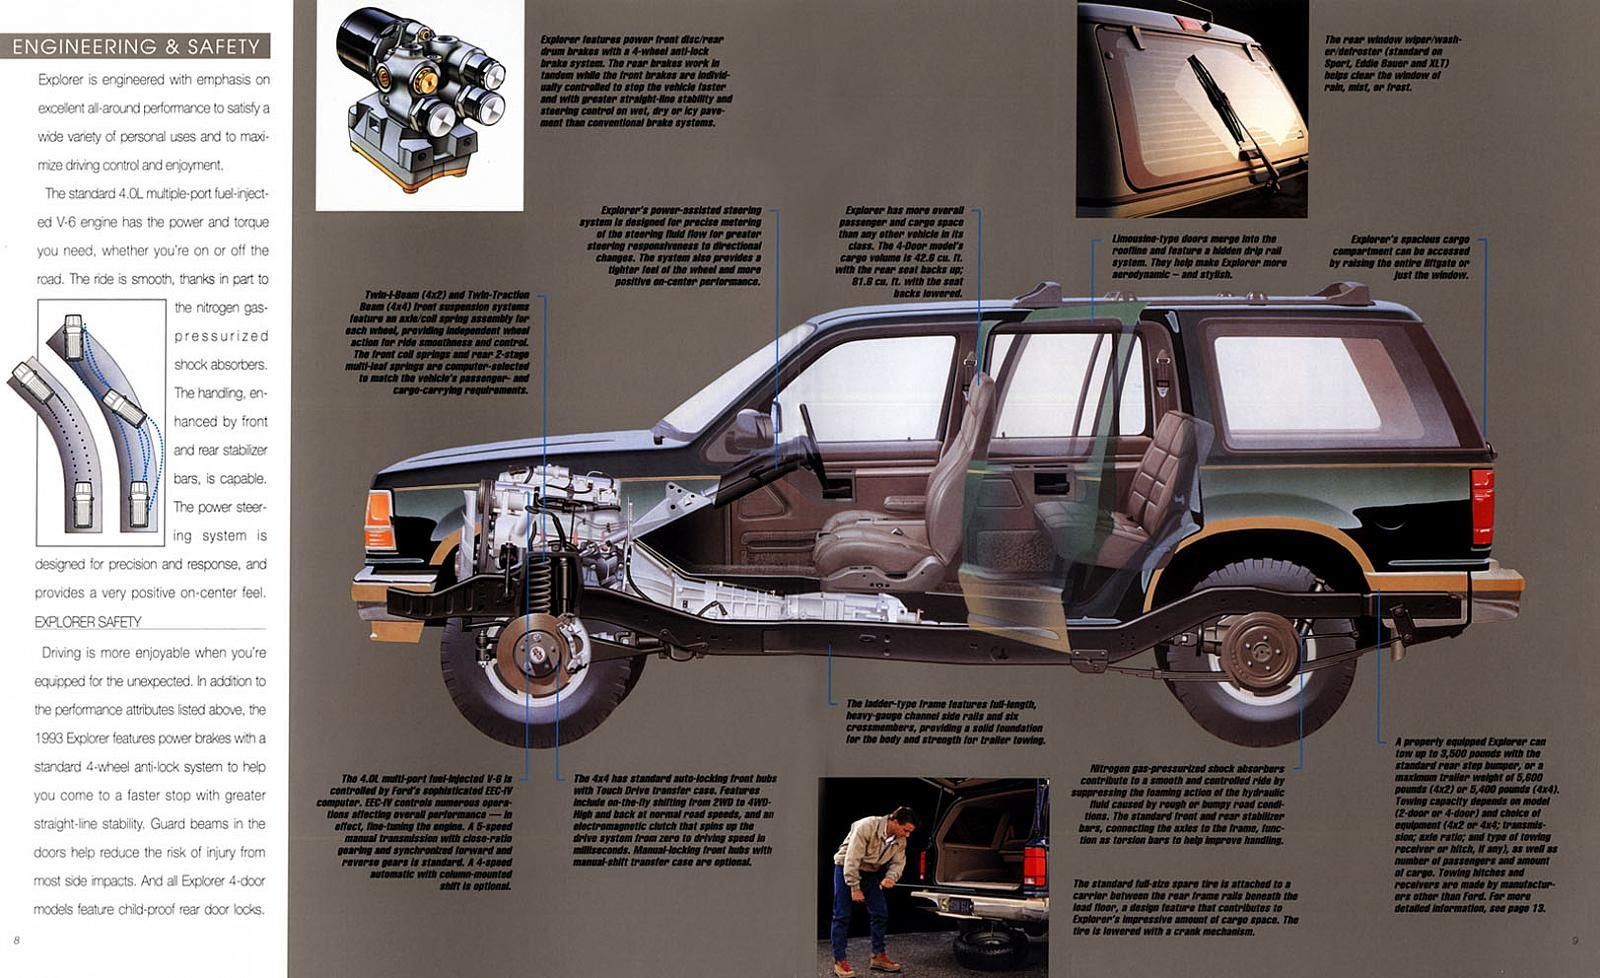 1993 Ford Explorer 08 09 With Images Ford Explorer Jurassic